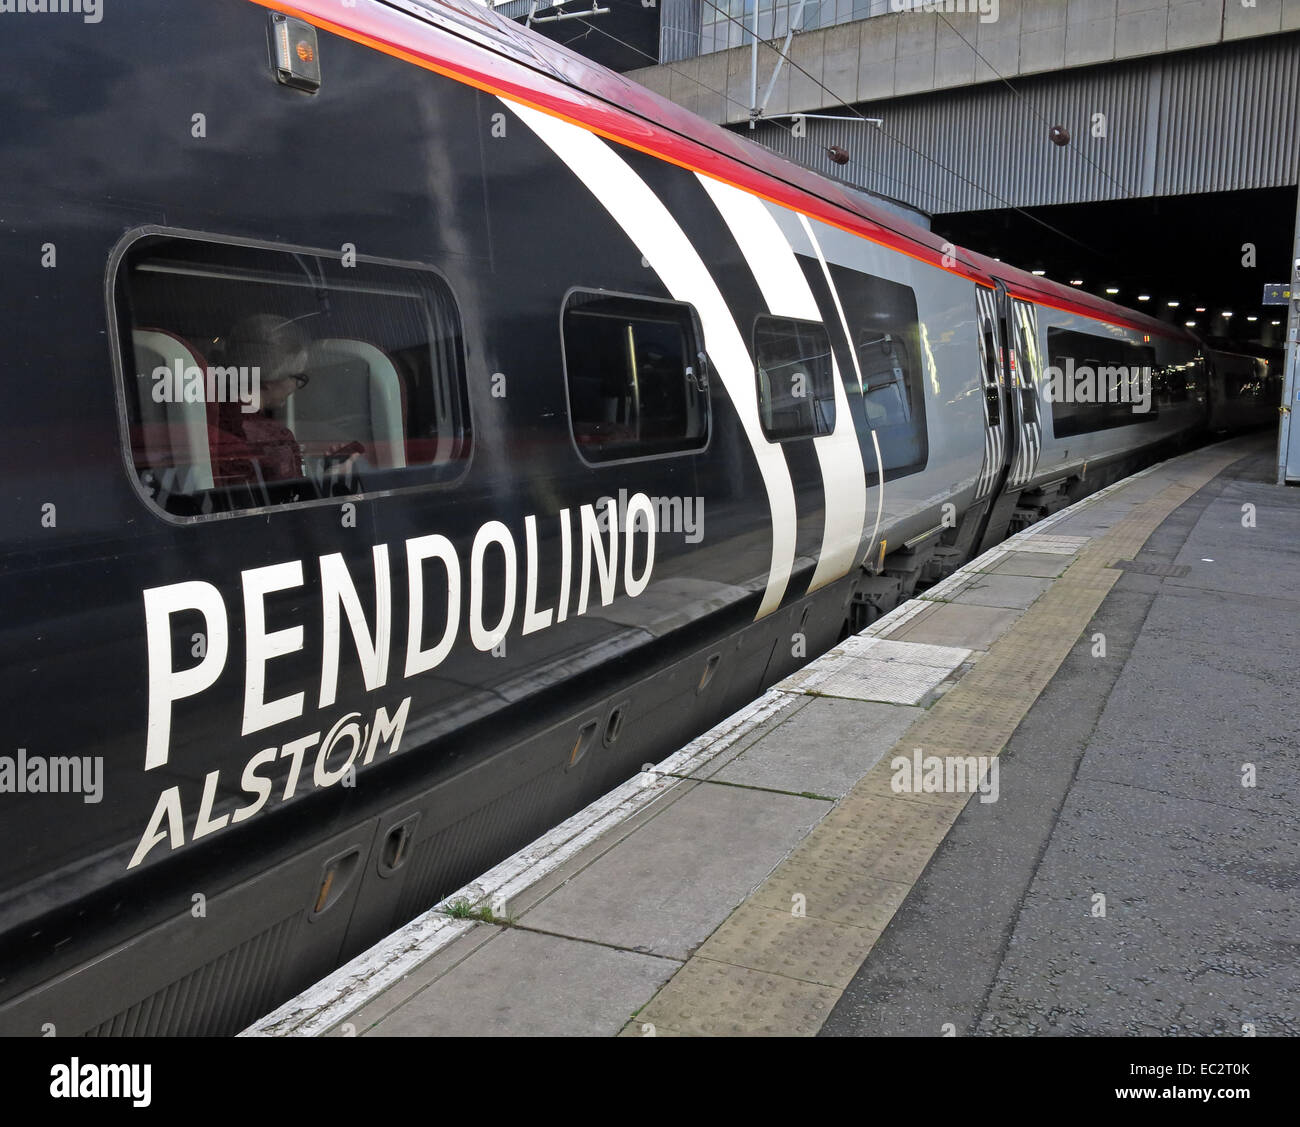 Alstom Pendolino express passenger train at Euston station London, England , UK - Stock Image